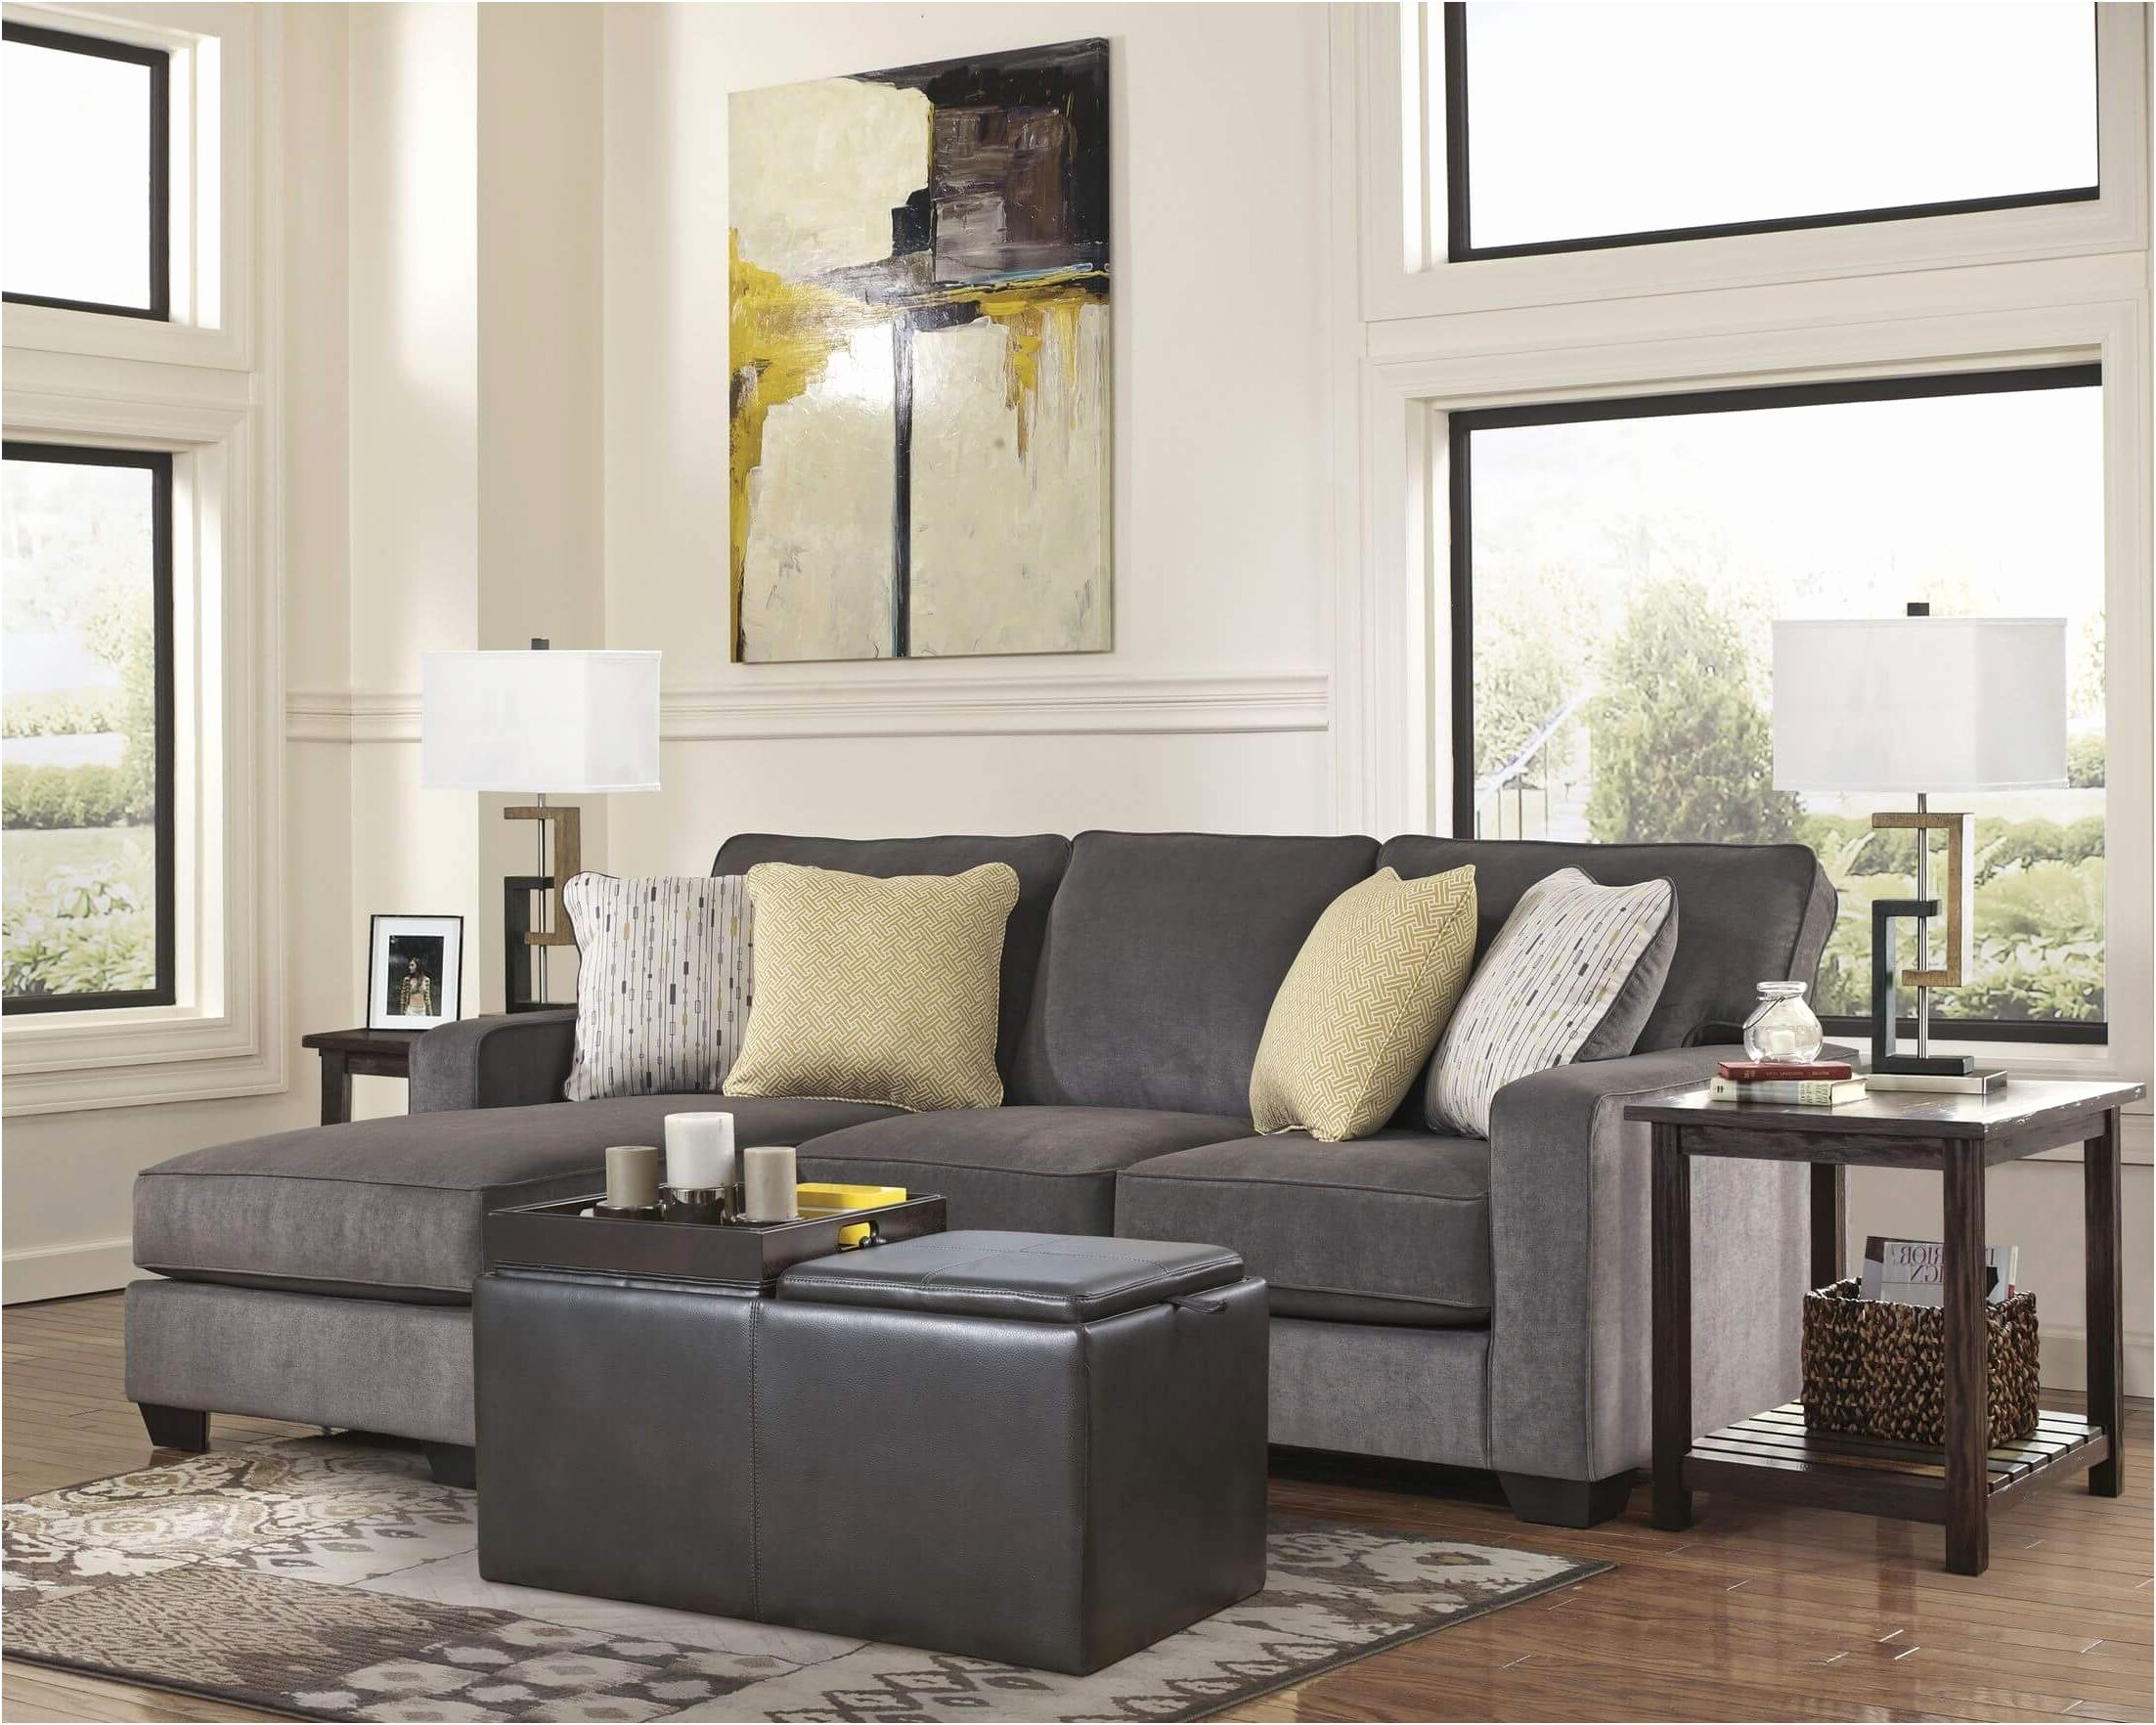 modern rooms to go sofa sleeper decoration-Sensational Rooms to Go sofa Sleeper Image